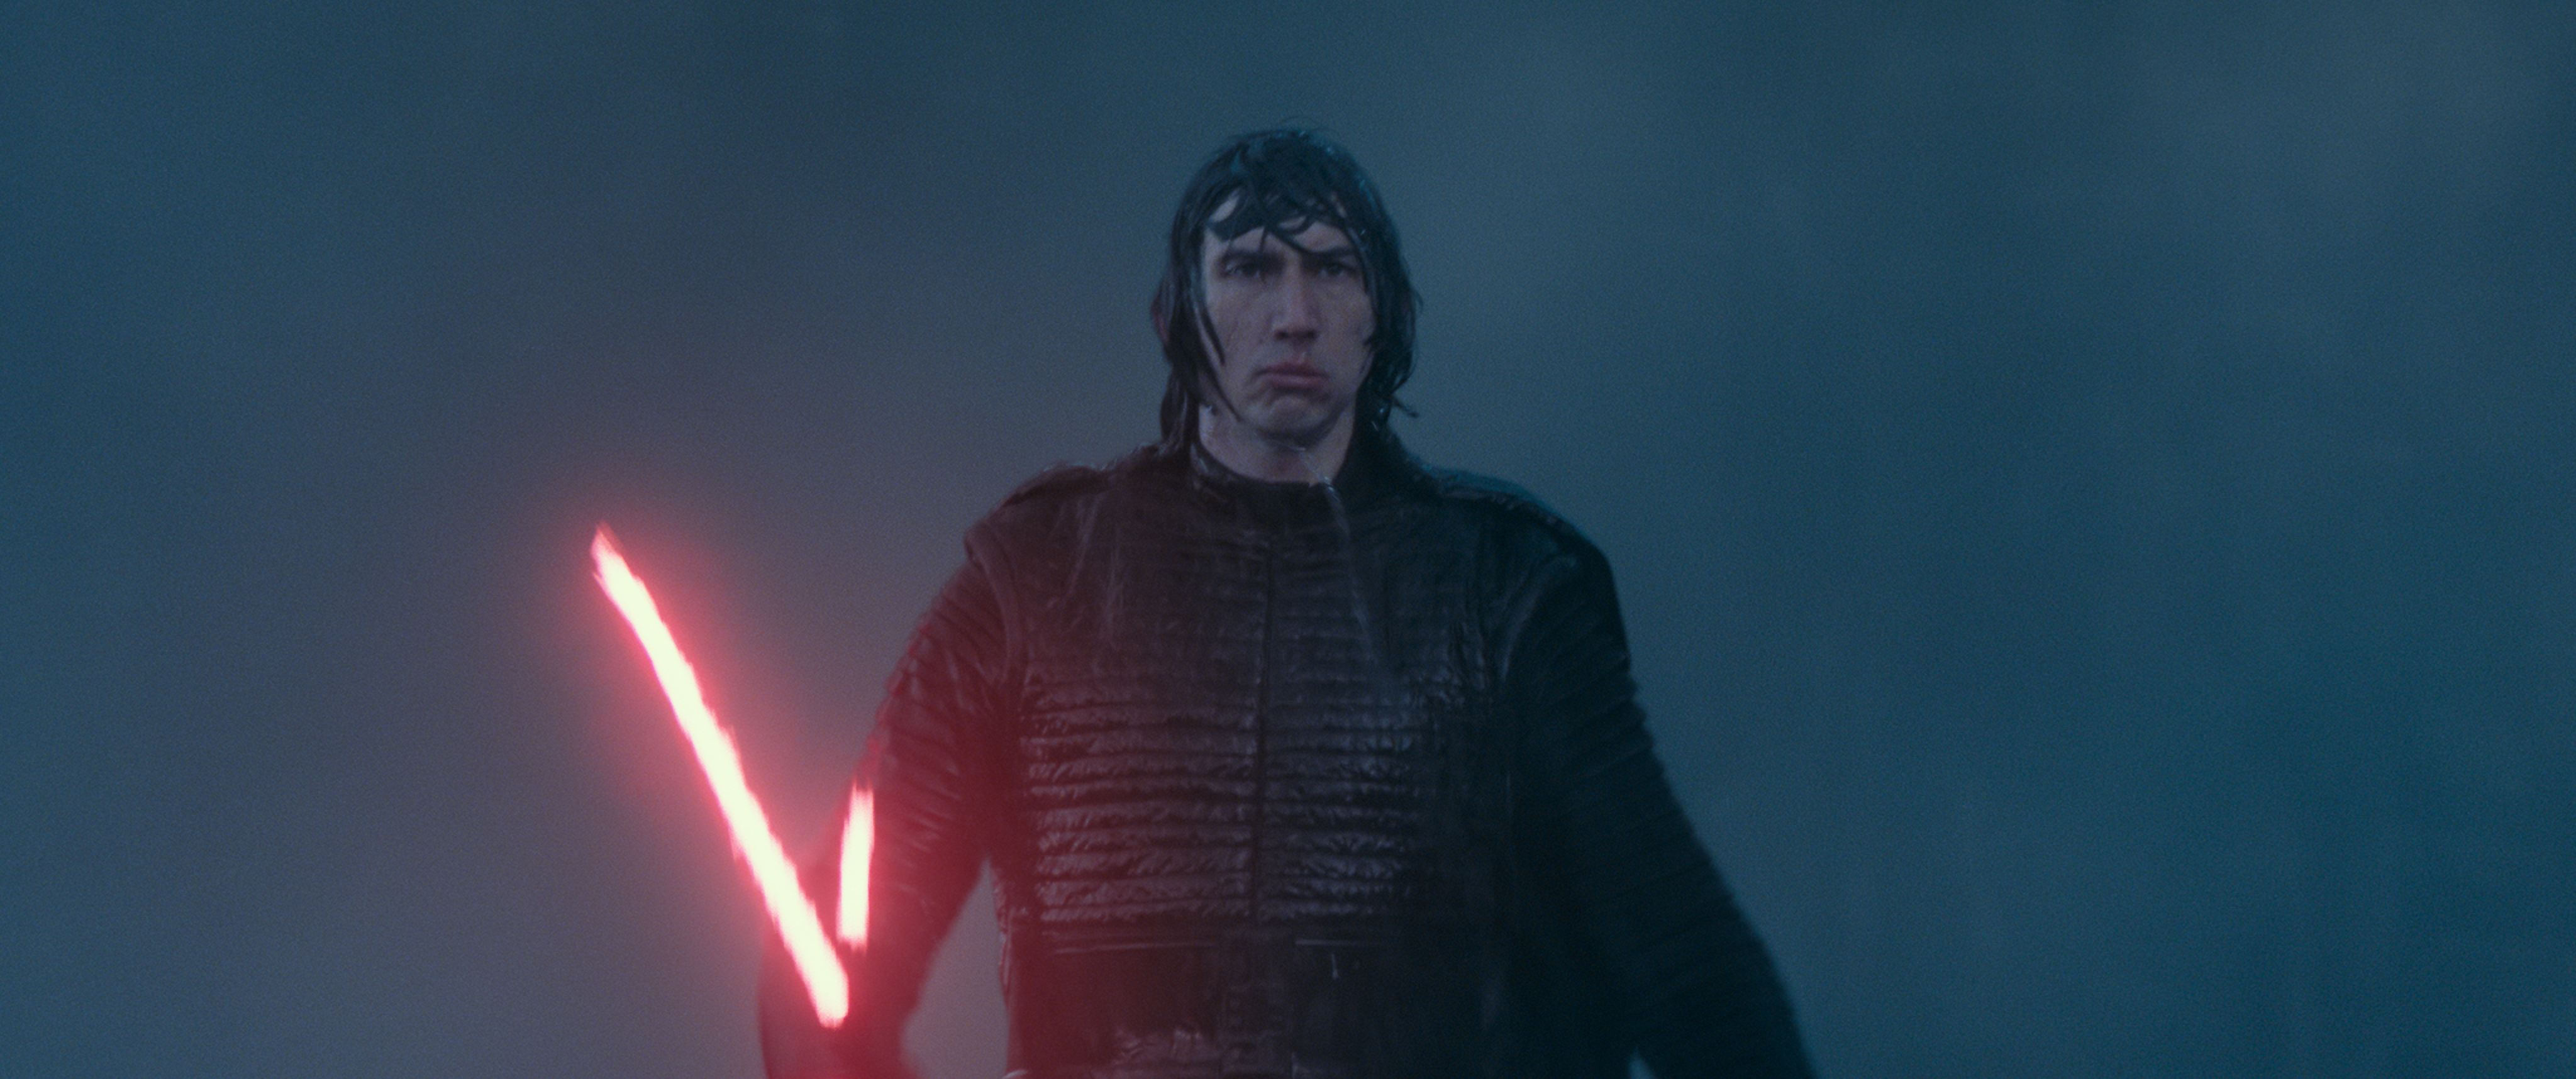 Adam Driver is Kylo Ren in STAR WARS: THE RISE OF SKYWALKER